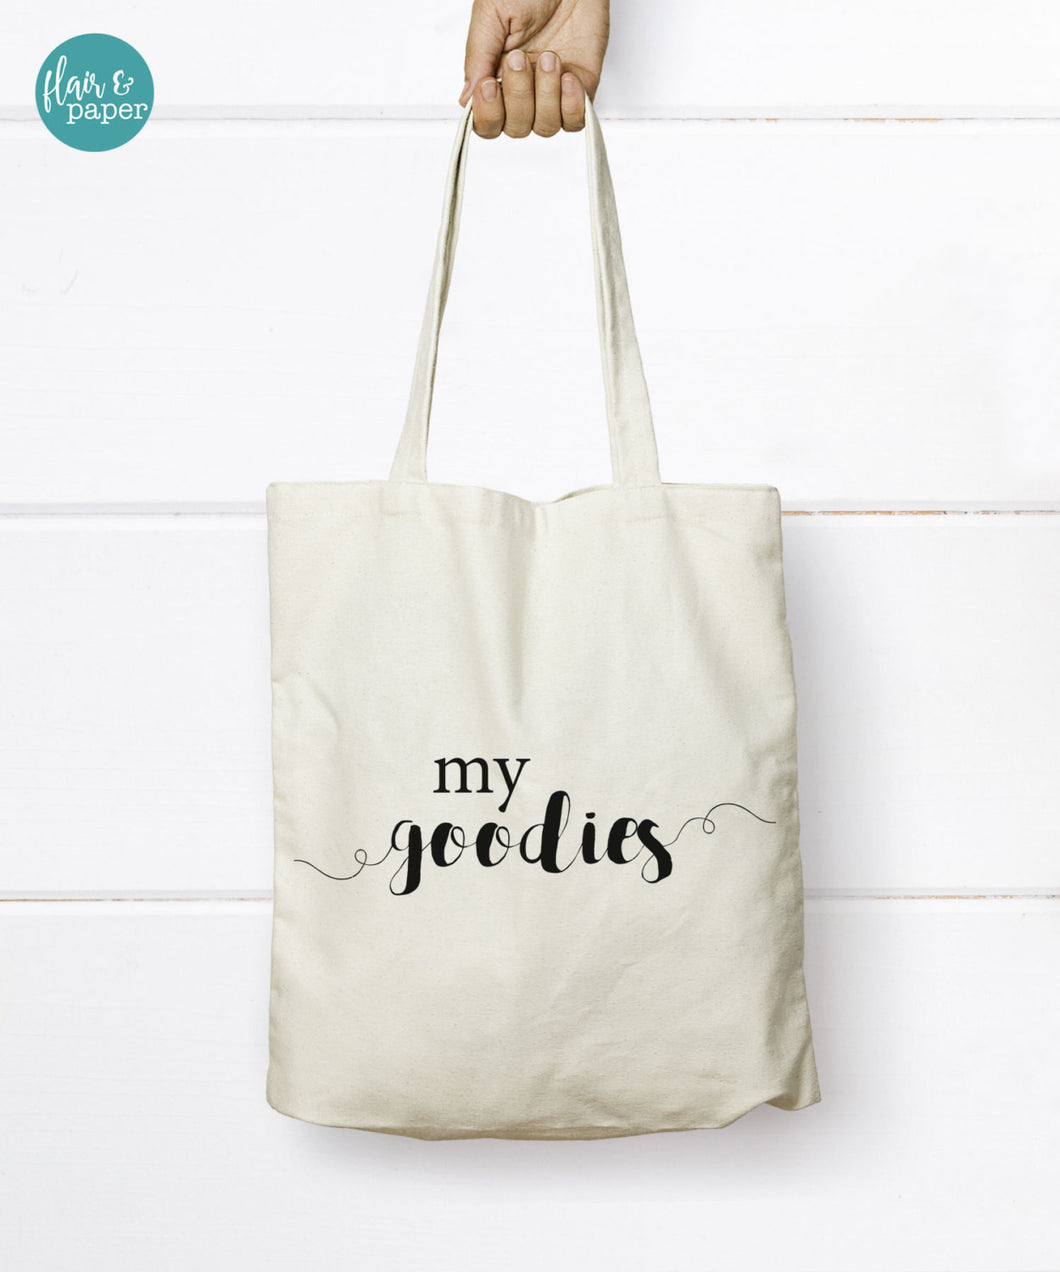 My goodies Tote Bag